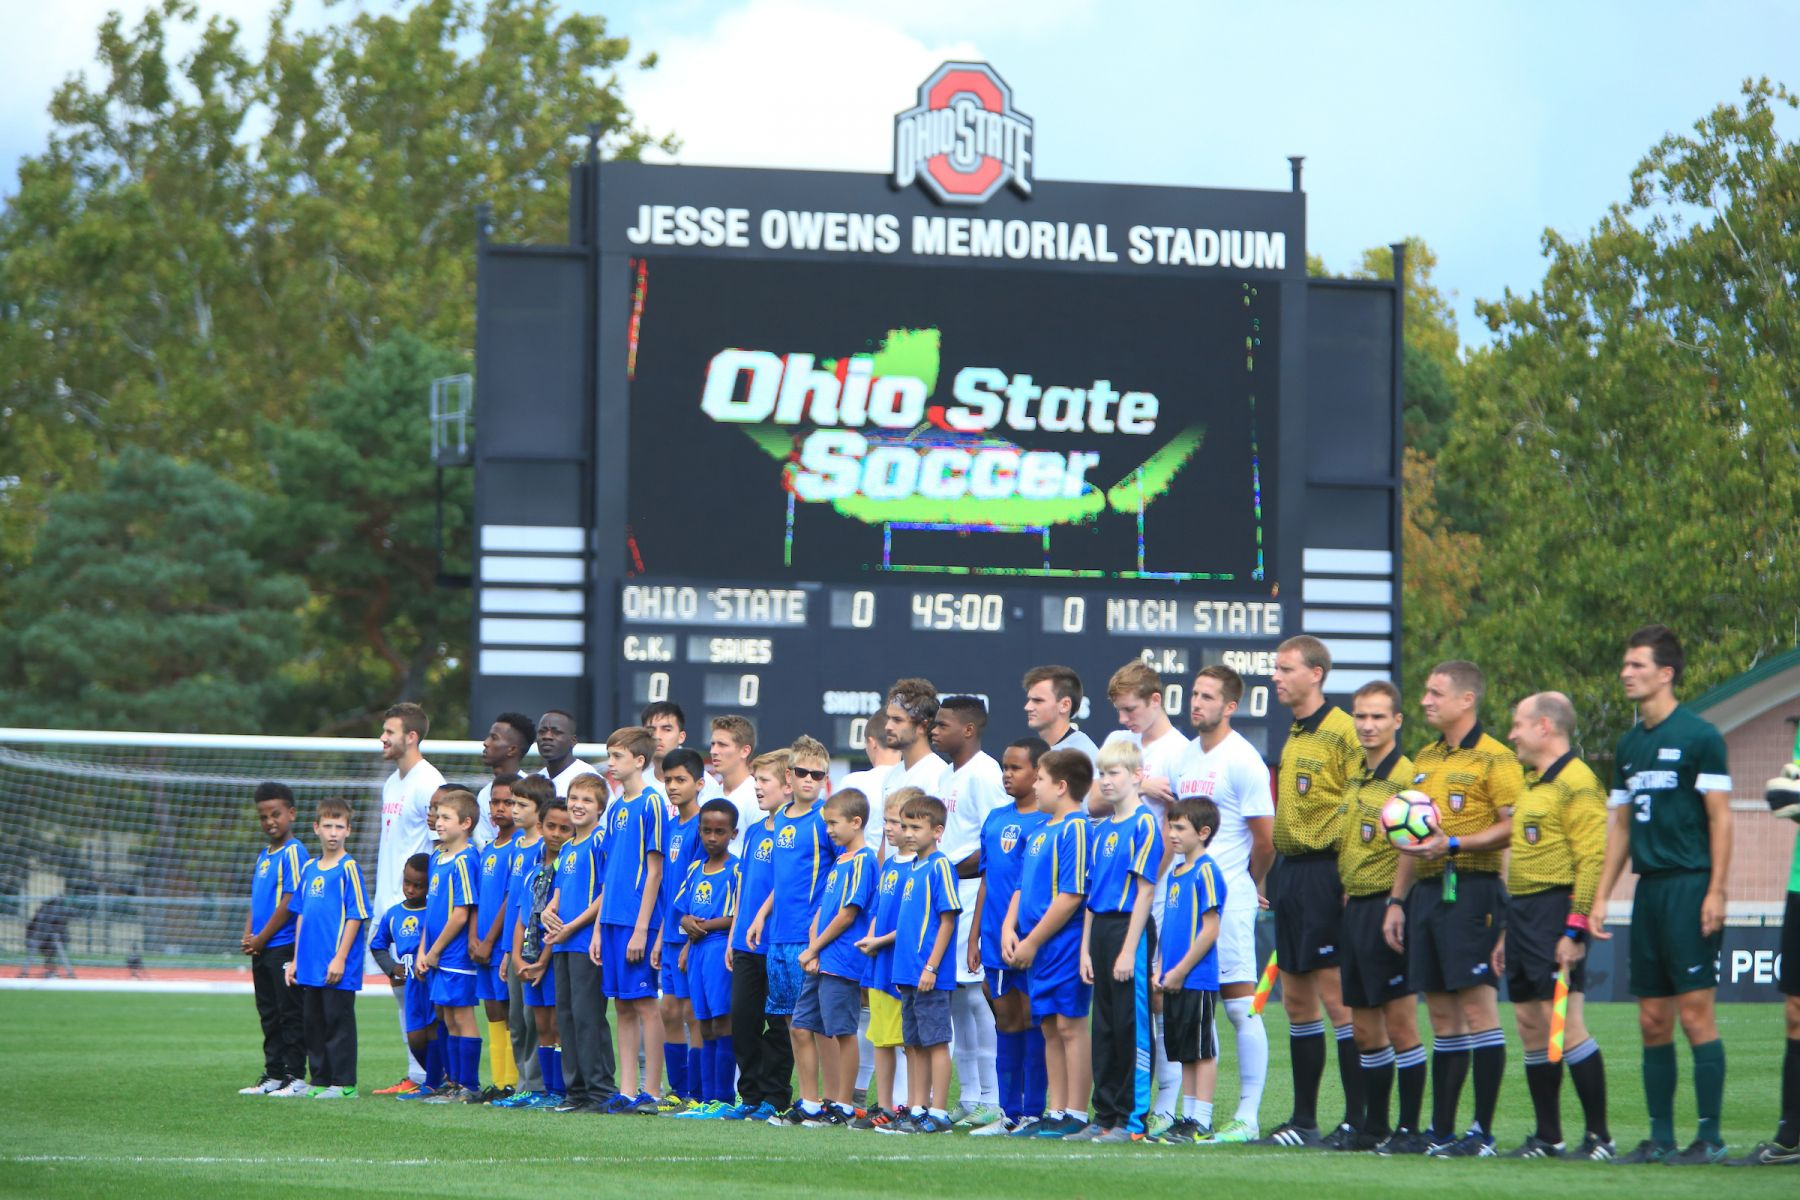 The Ohio State men's soccer team played Michigan State Sunday, Oct. 2, 2016 at Jesse Owens Memorial Stadium.